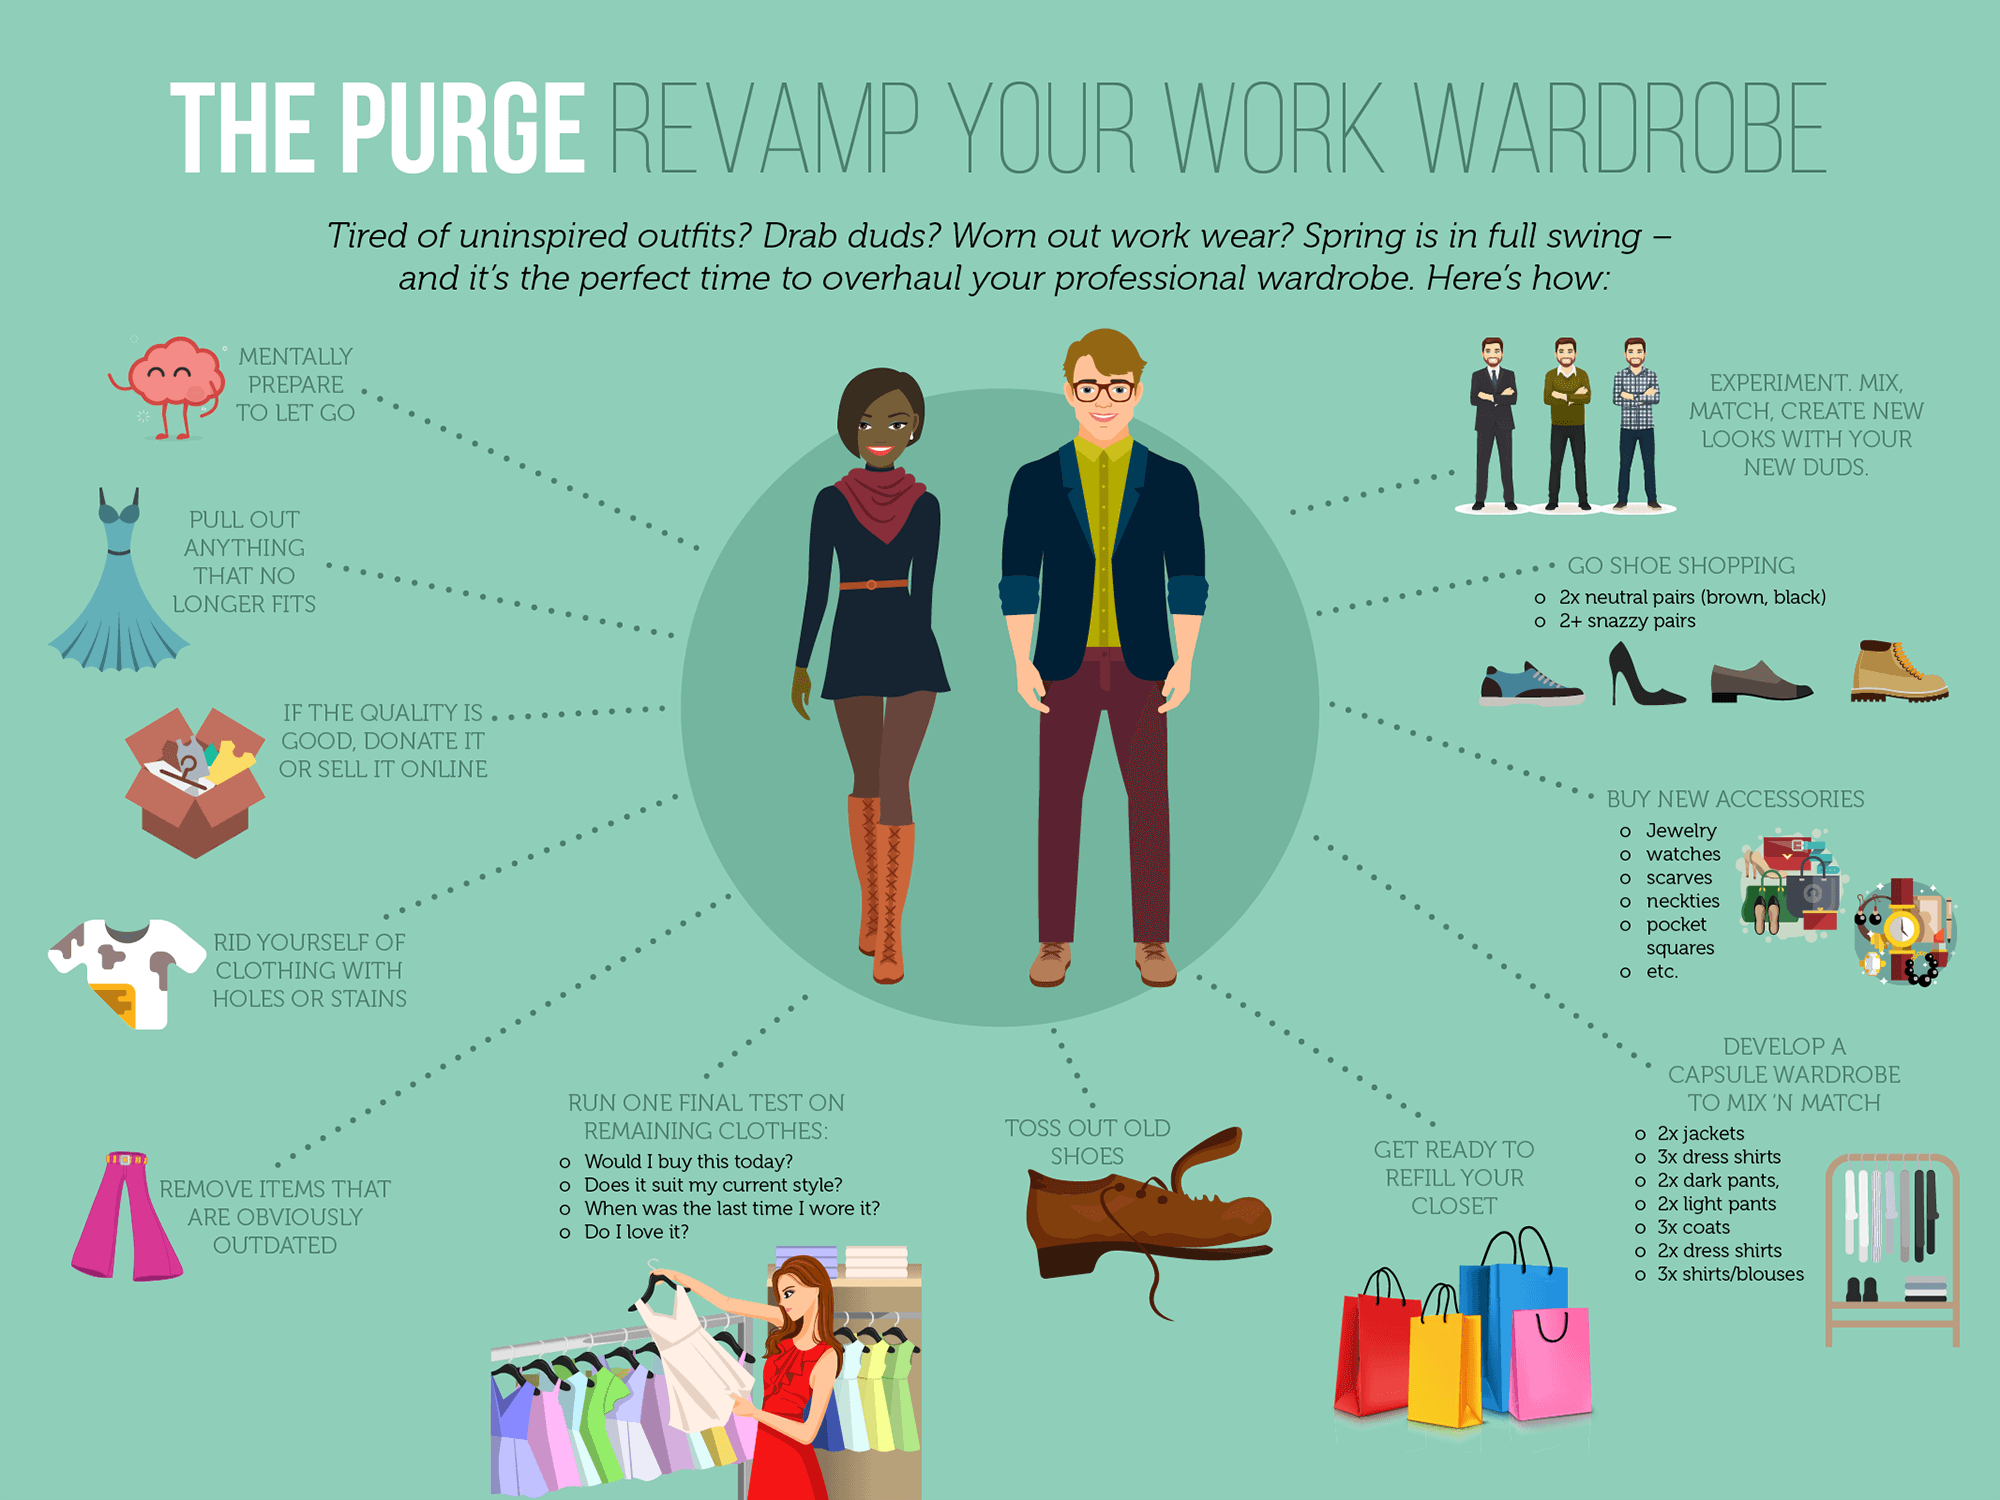 The Purge: Revamp Your Work Wardrove